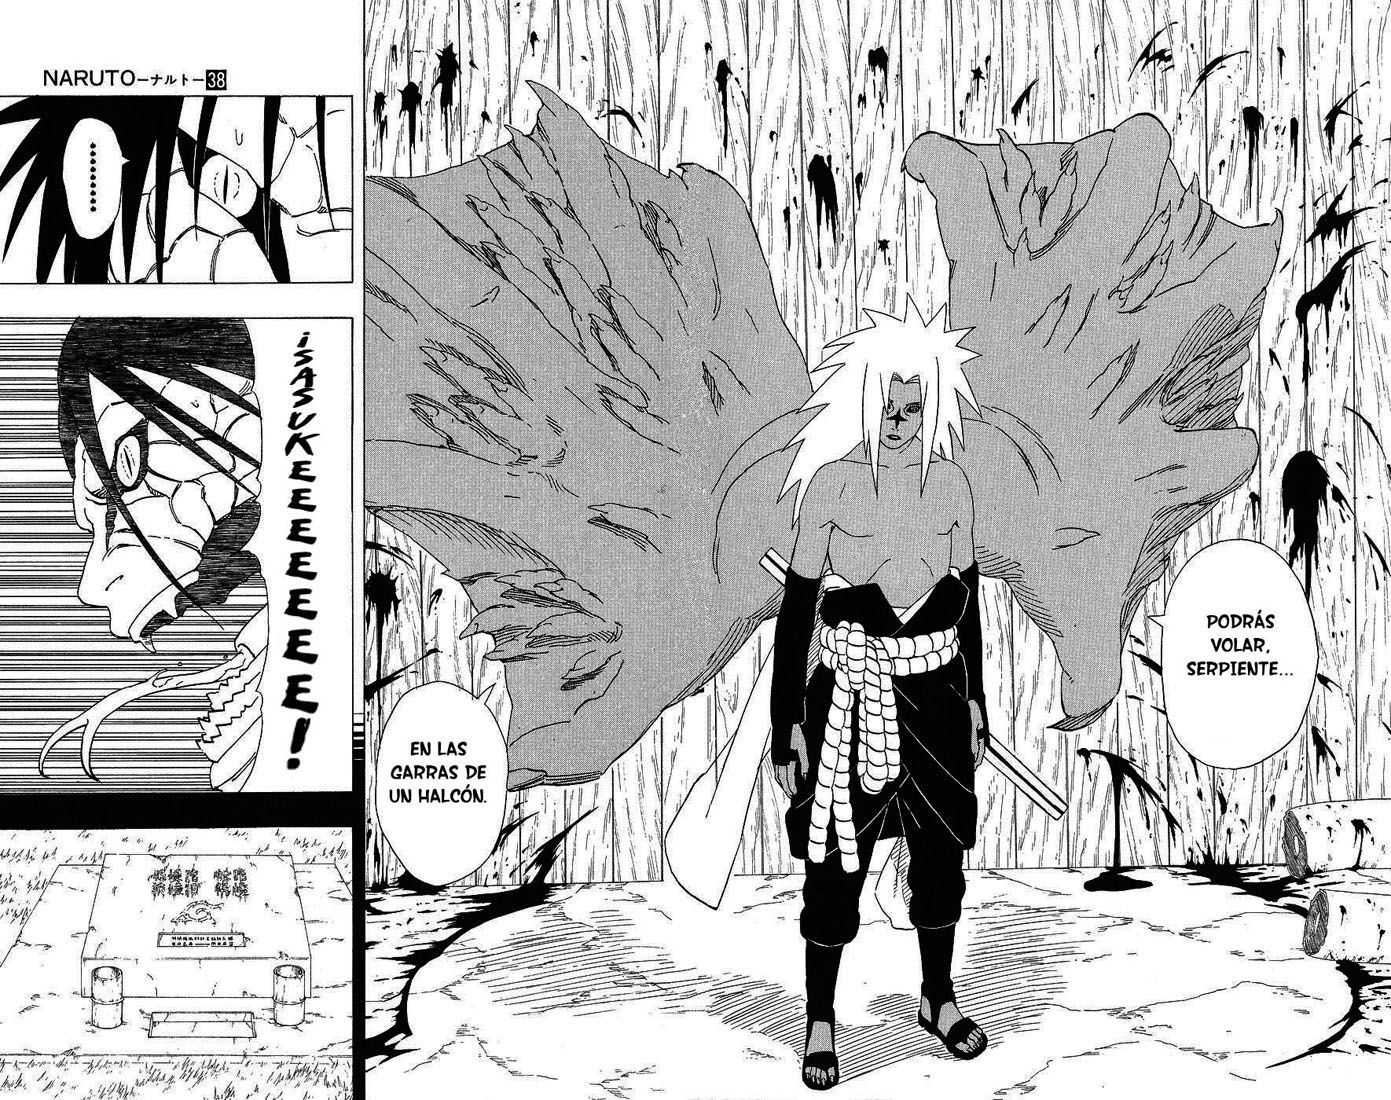 Naruto manga 344 espaol online hd descargar gratis pacovi 2 naruto 344 read manga online in english you can read free series online and english subtitle voltagebd Images